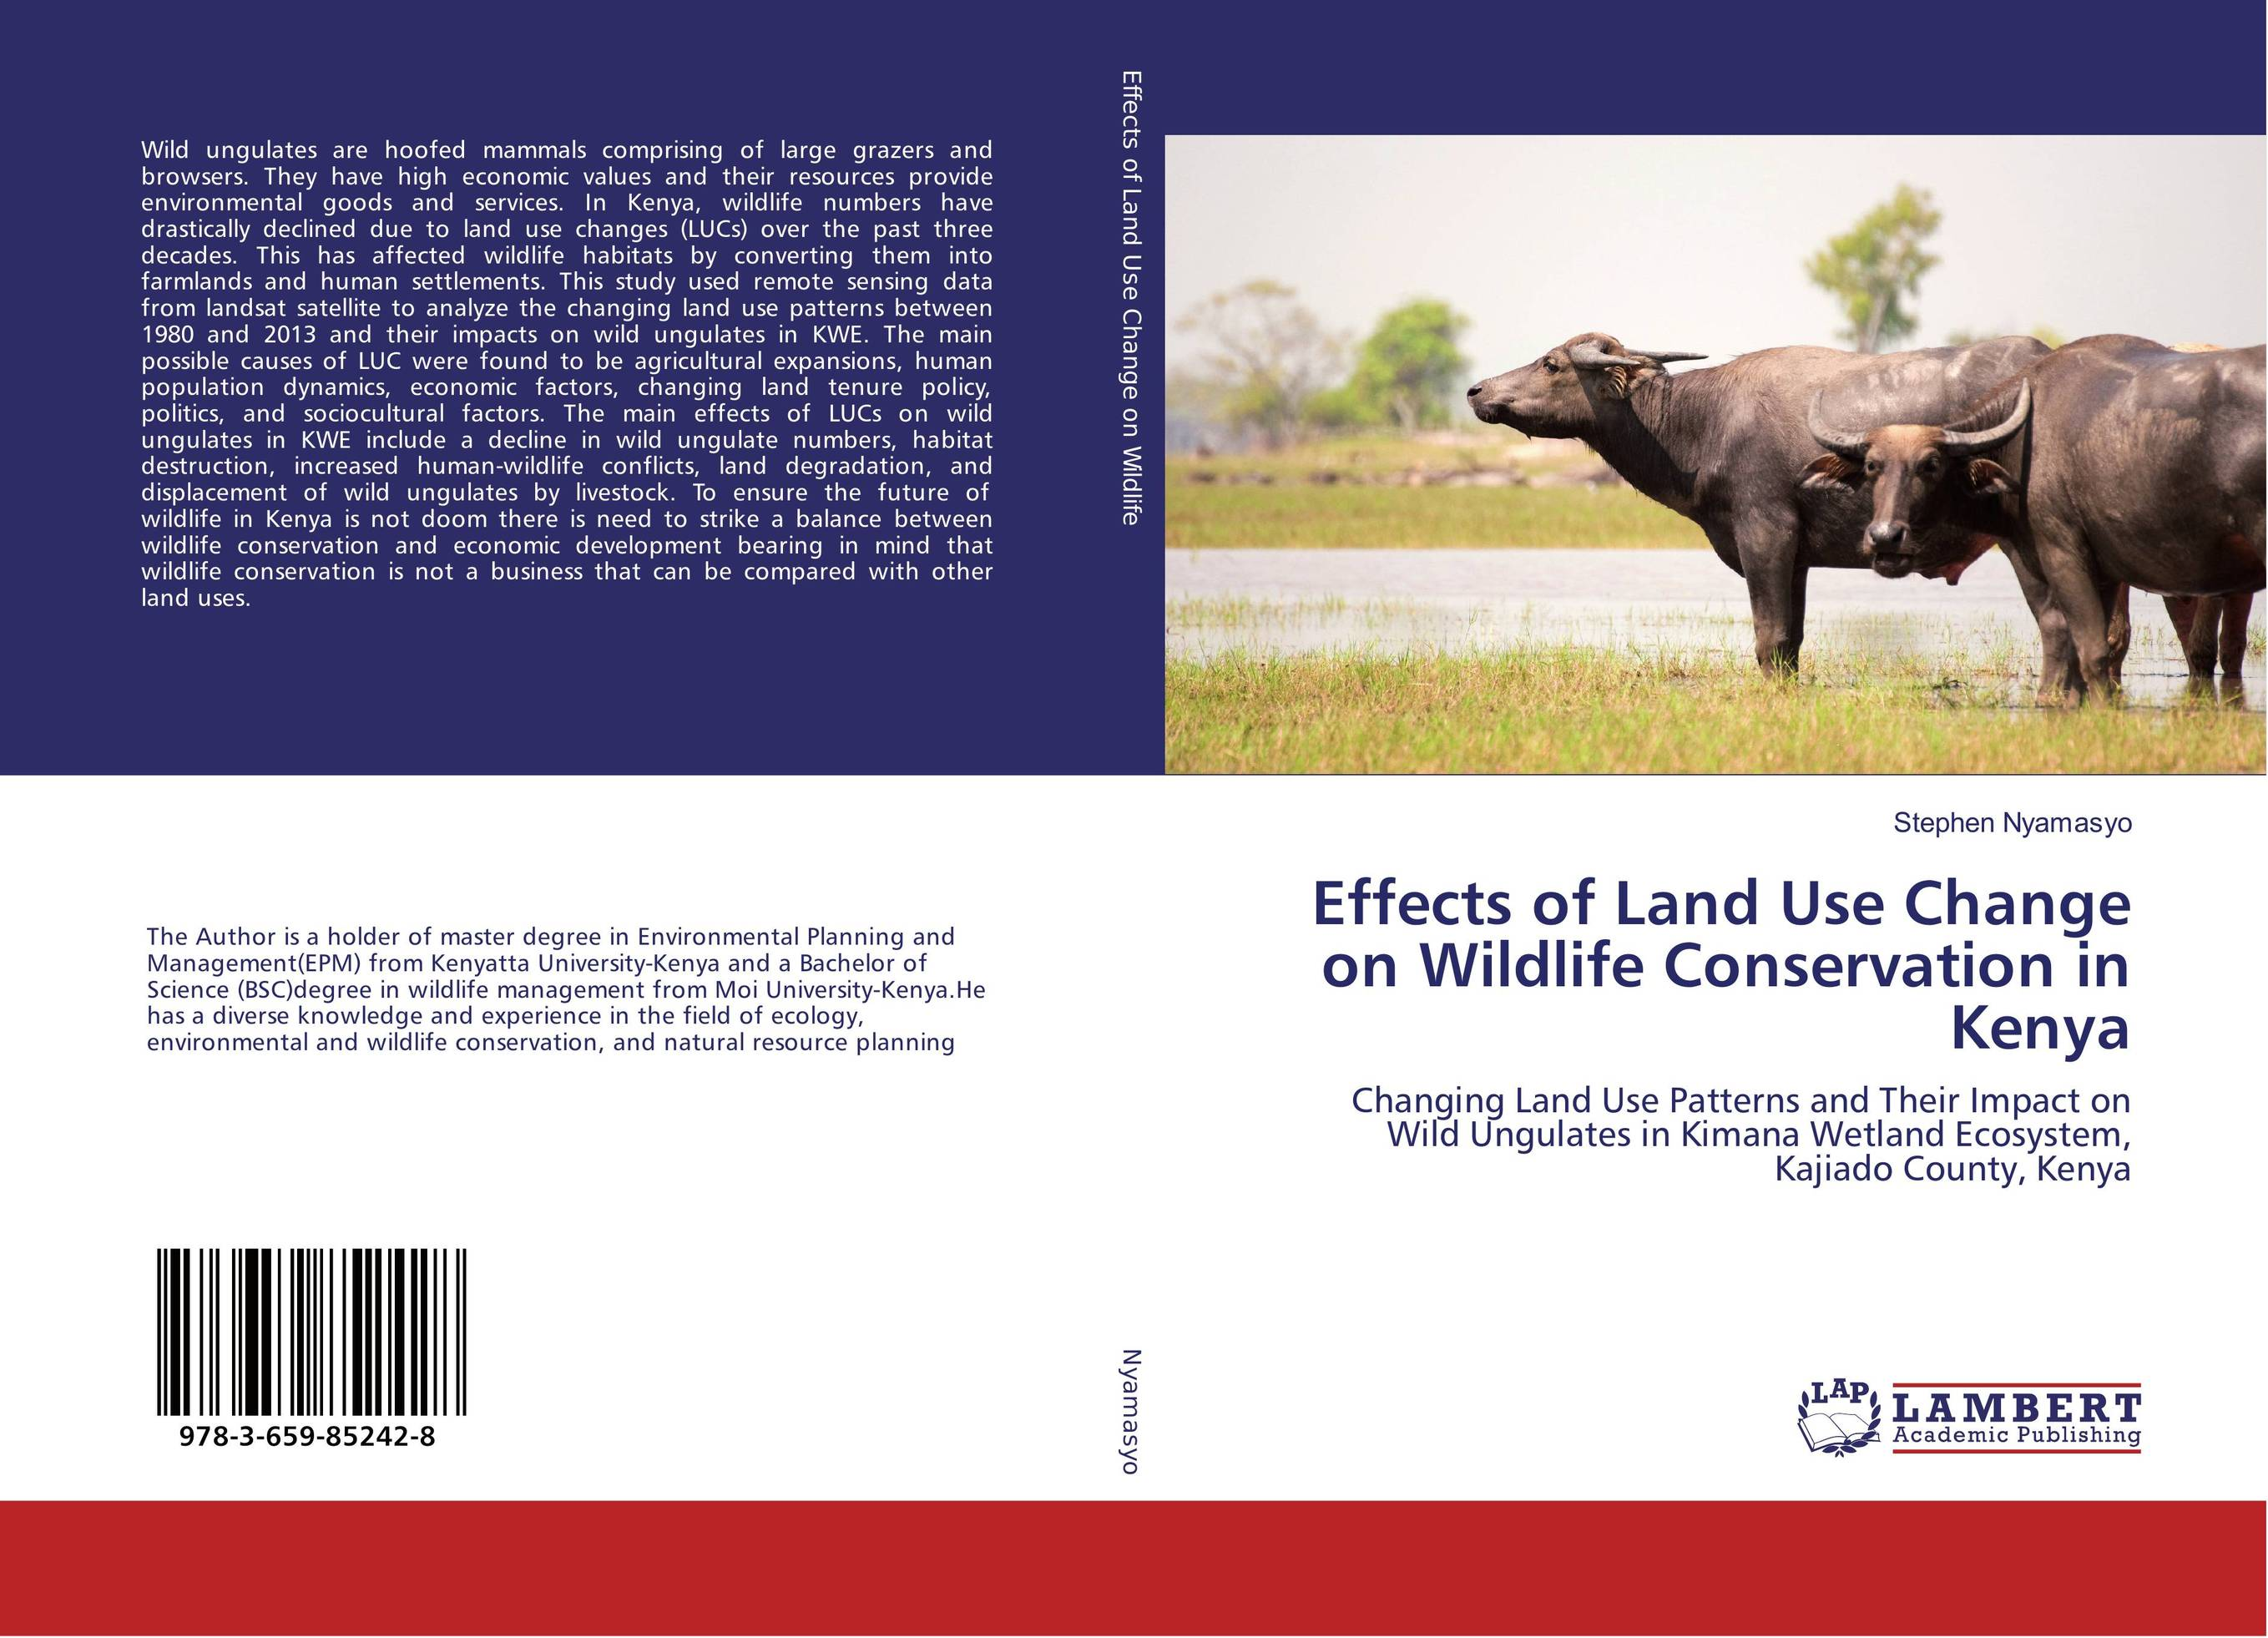 Effects of Land Use Change on Wildlife Conservation in Kenya